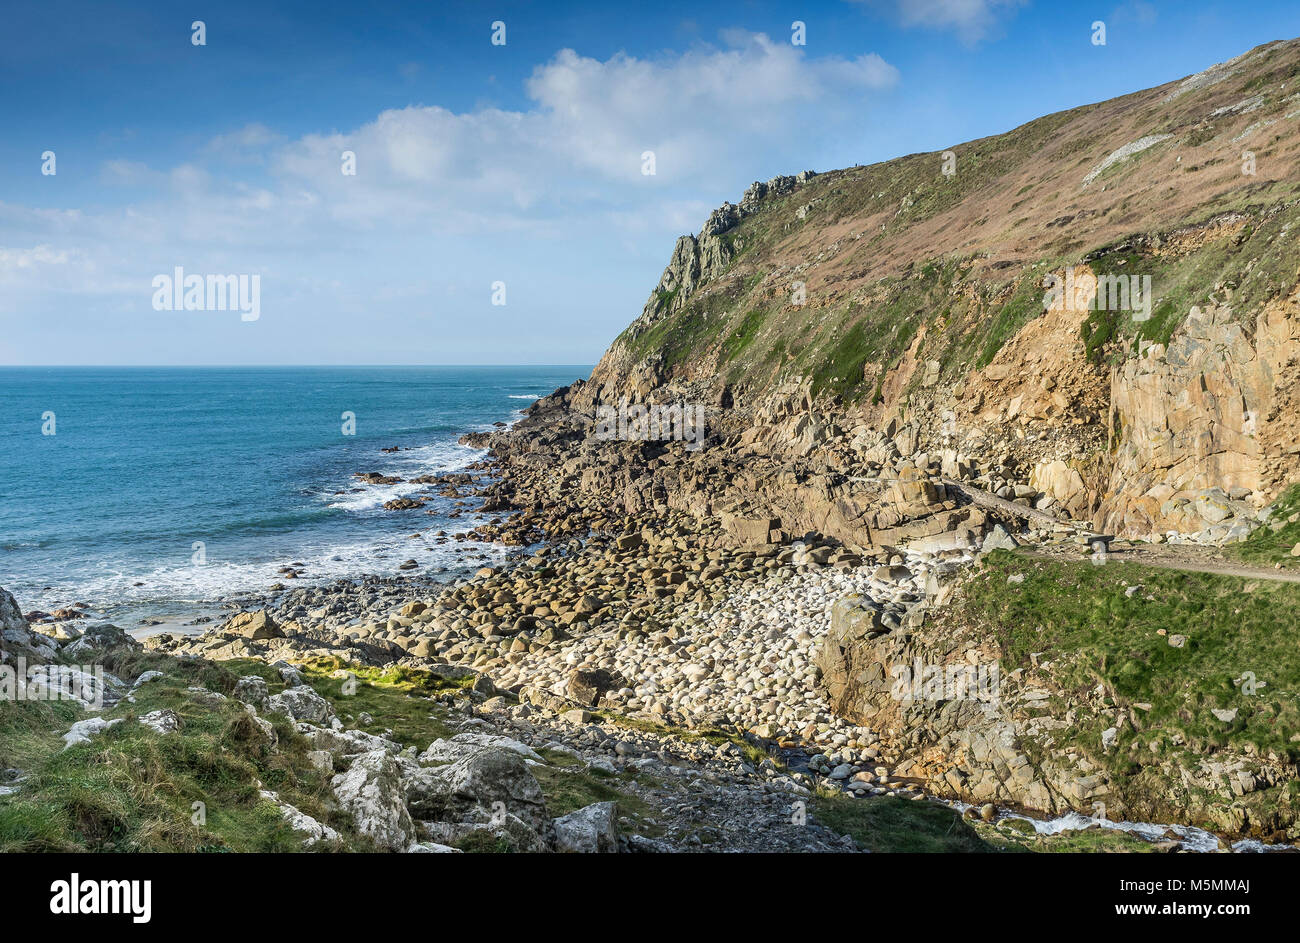 Low tide at Porth Nanven in Cornwall. - Stock Image